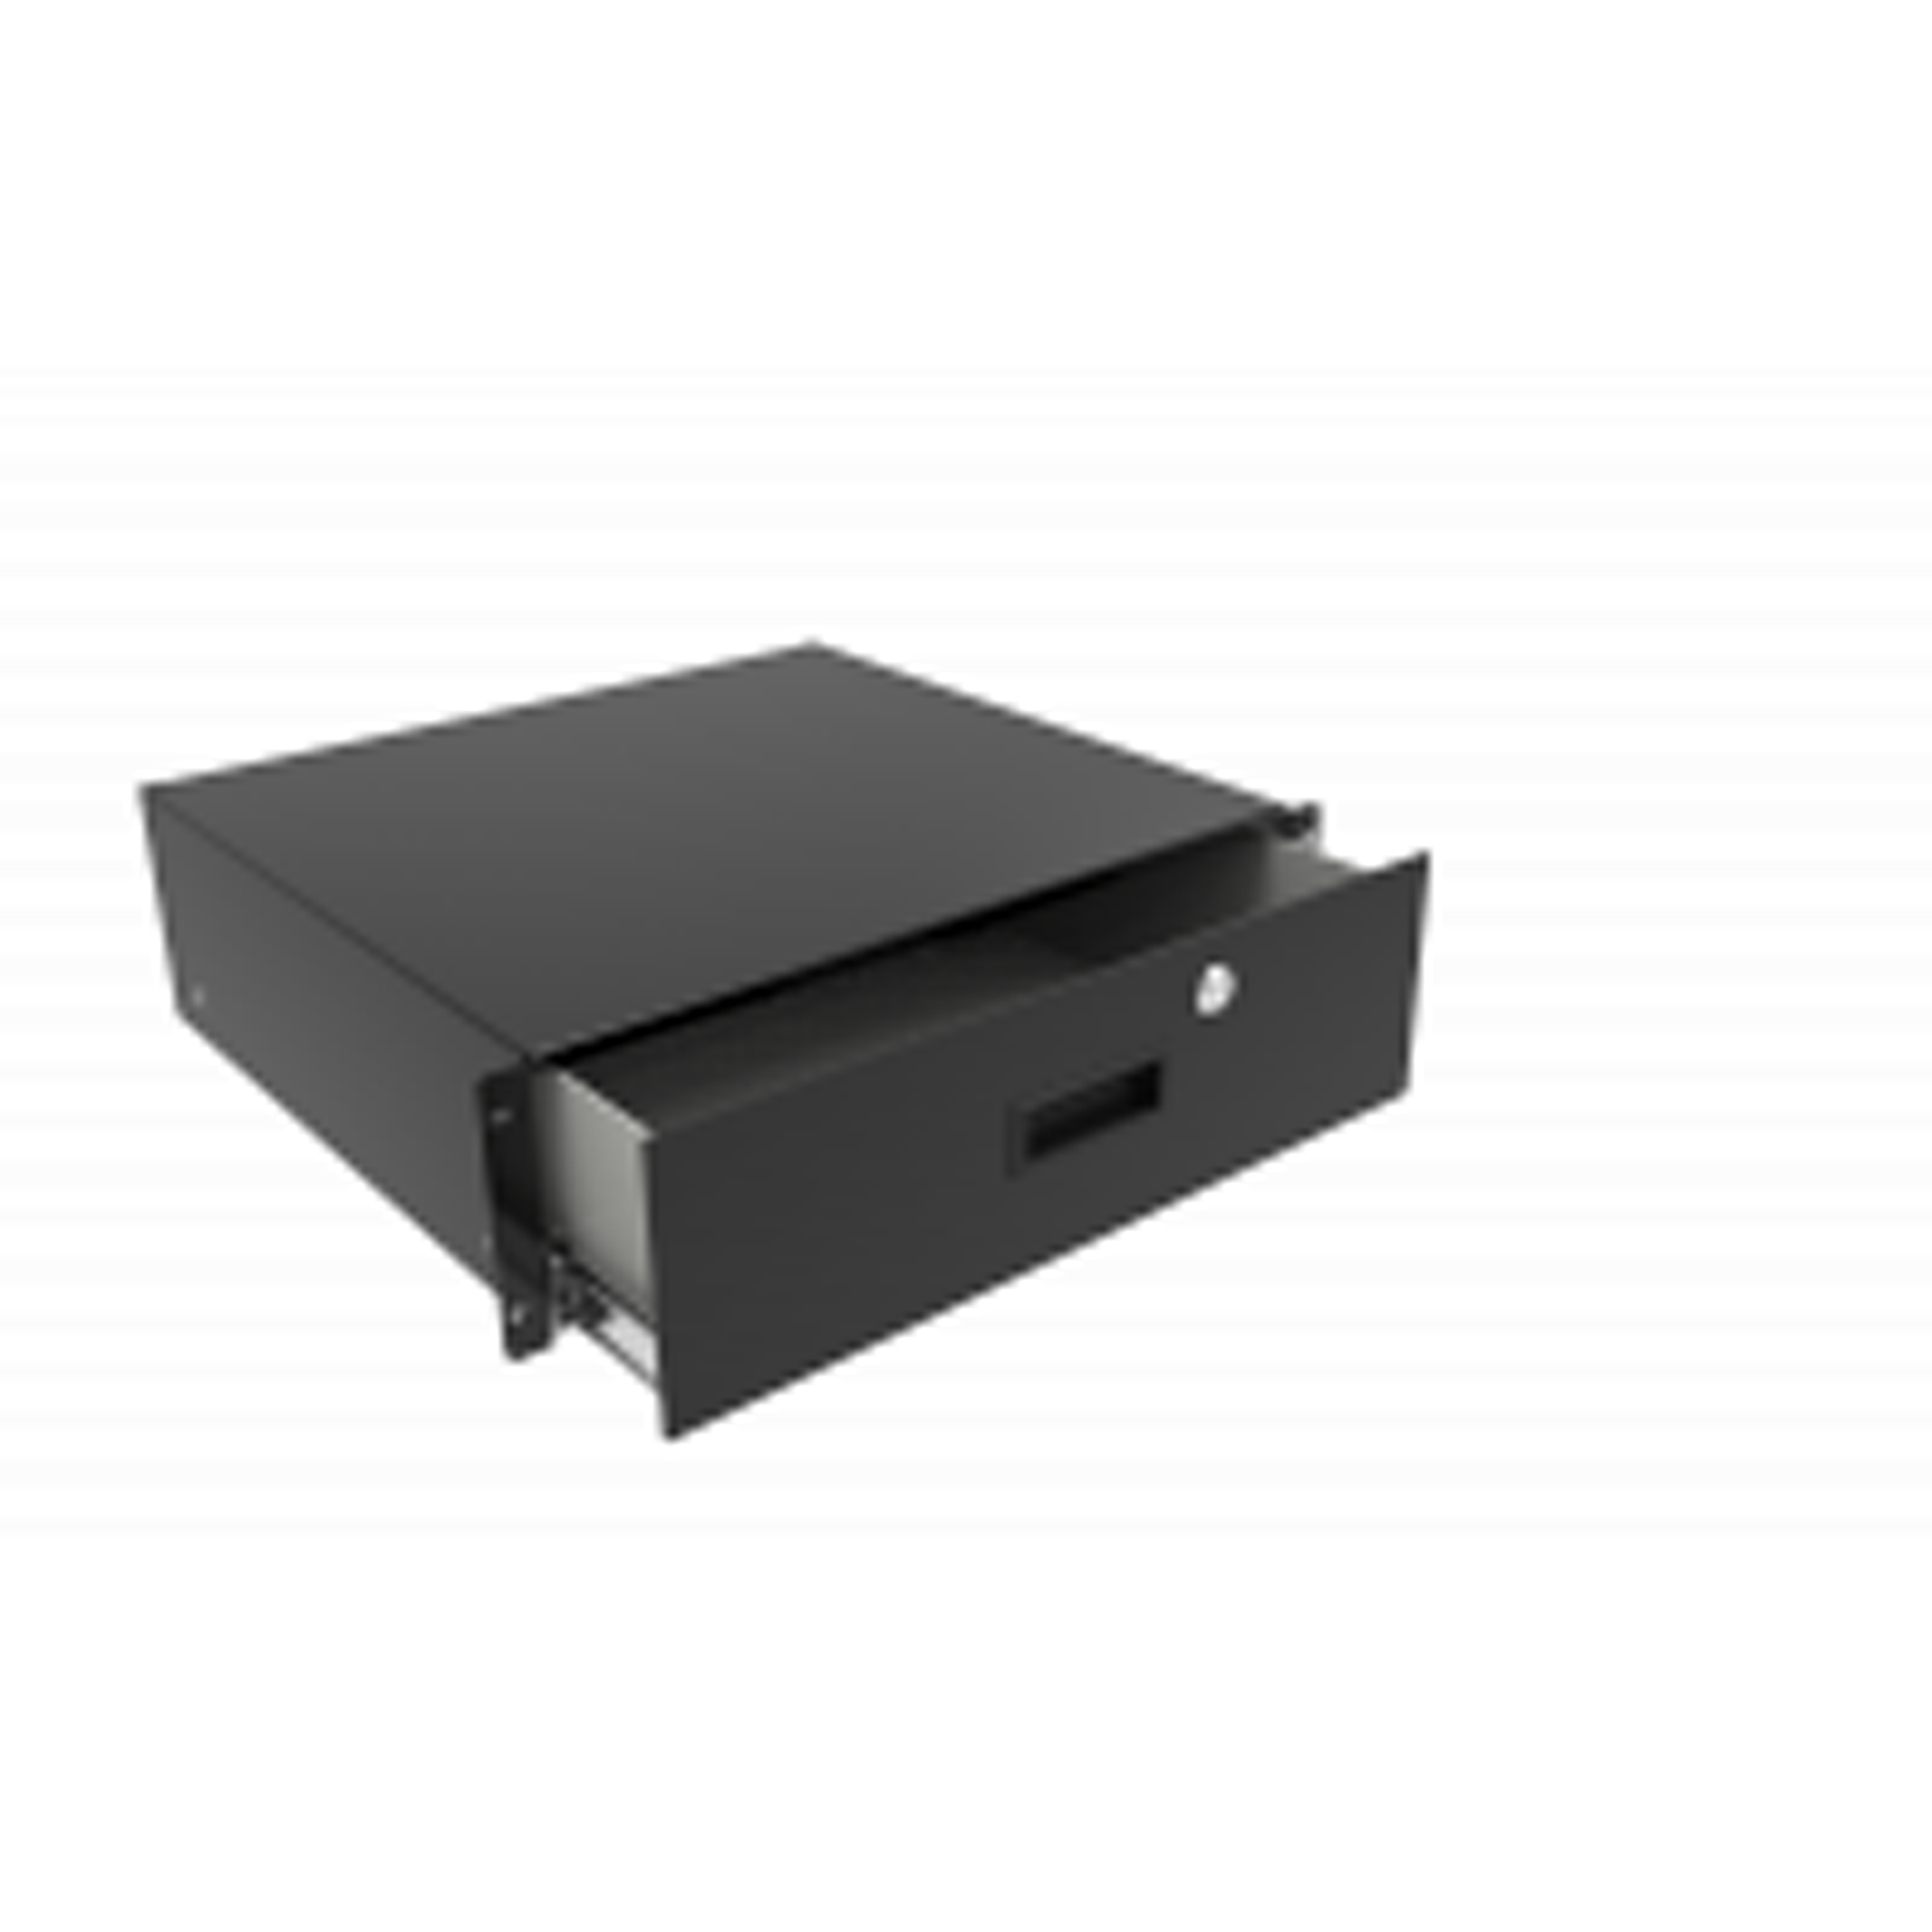 S2000 Rack Components Series 2000 Modular Console System